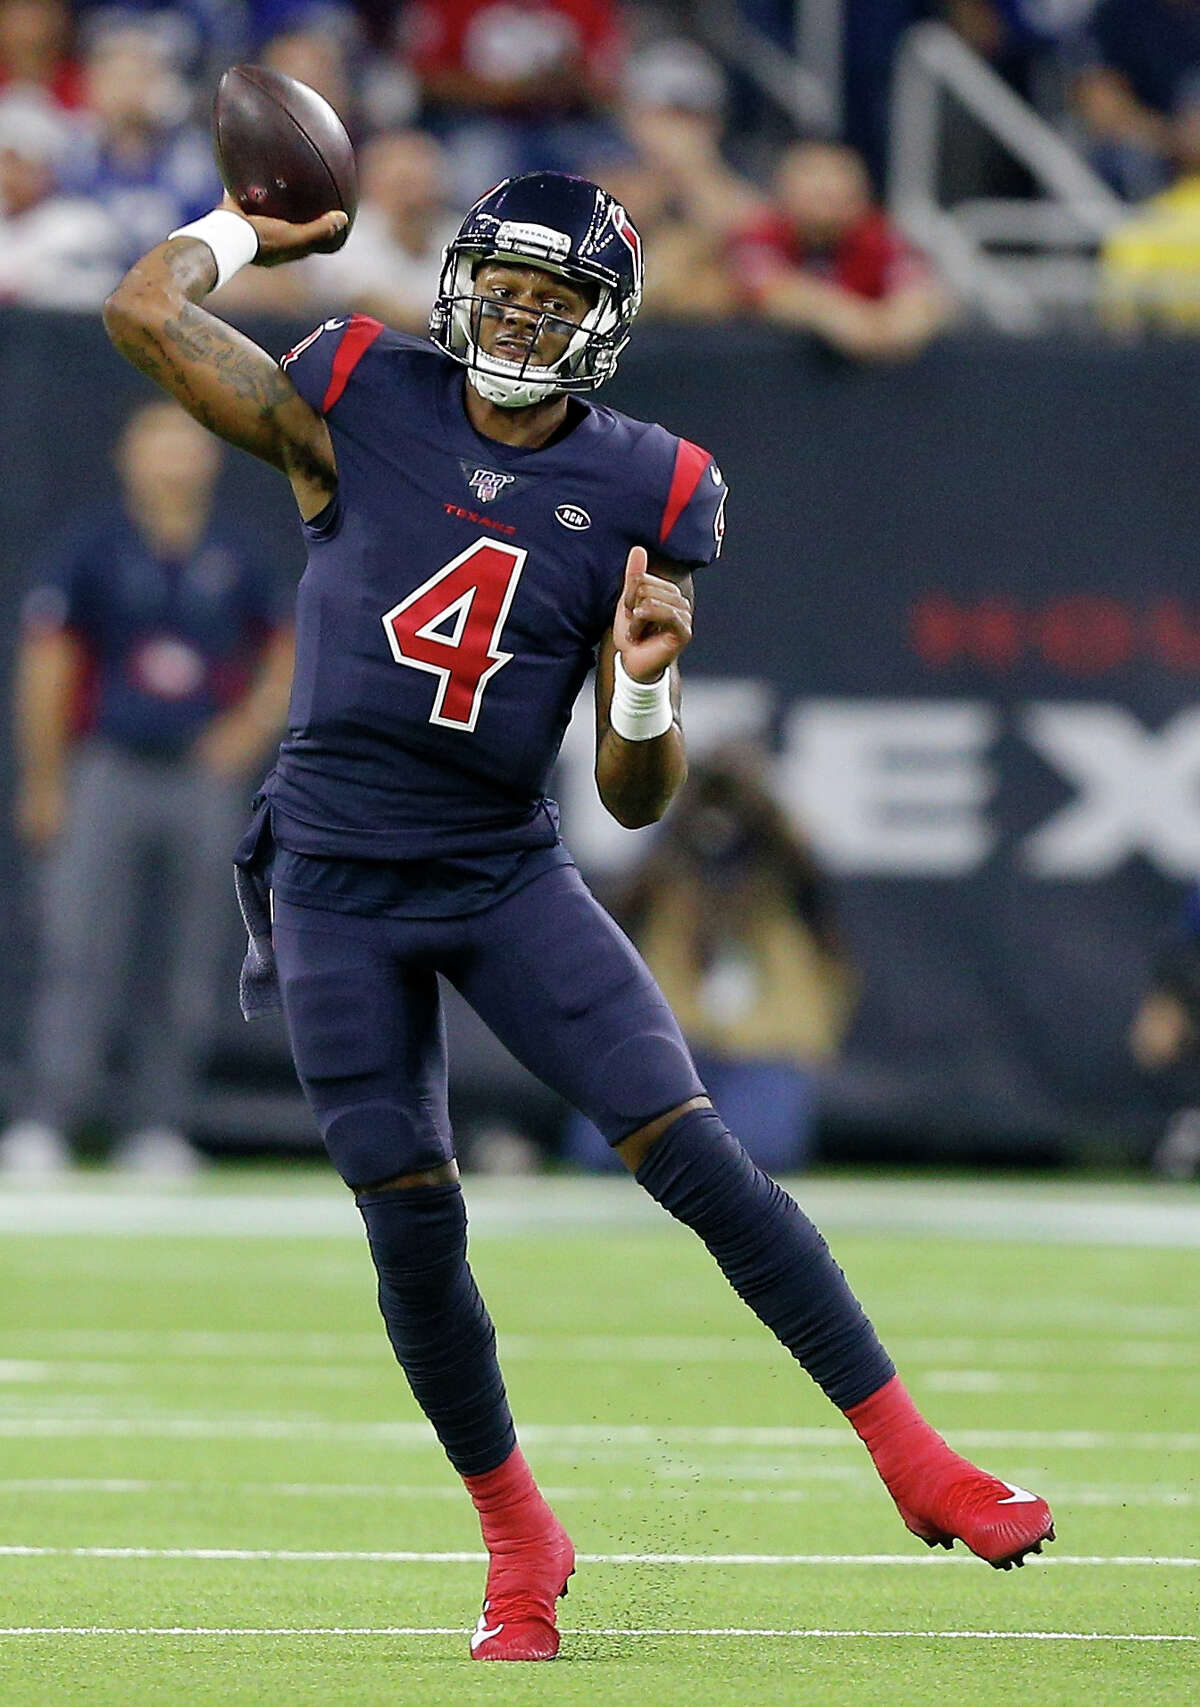 HOUSTON, TEXAS - NOVEMBER 21: Quarterback Deshaun Watson #4 of the Houston Texans delivers a pass over the defense of the Indianapolis Colts during the game at NRG Stadium on November 21, 2019 in Houston, Texas. (Photo by Bob Levey/Getty Images)